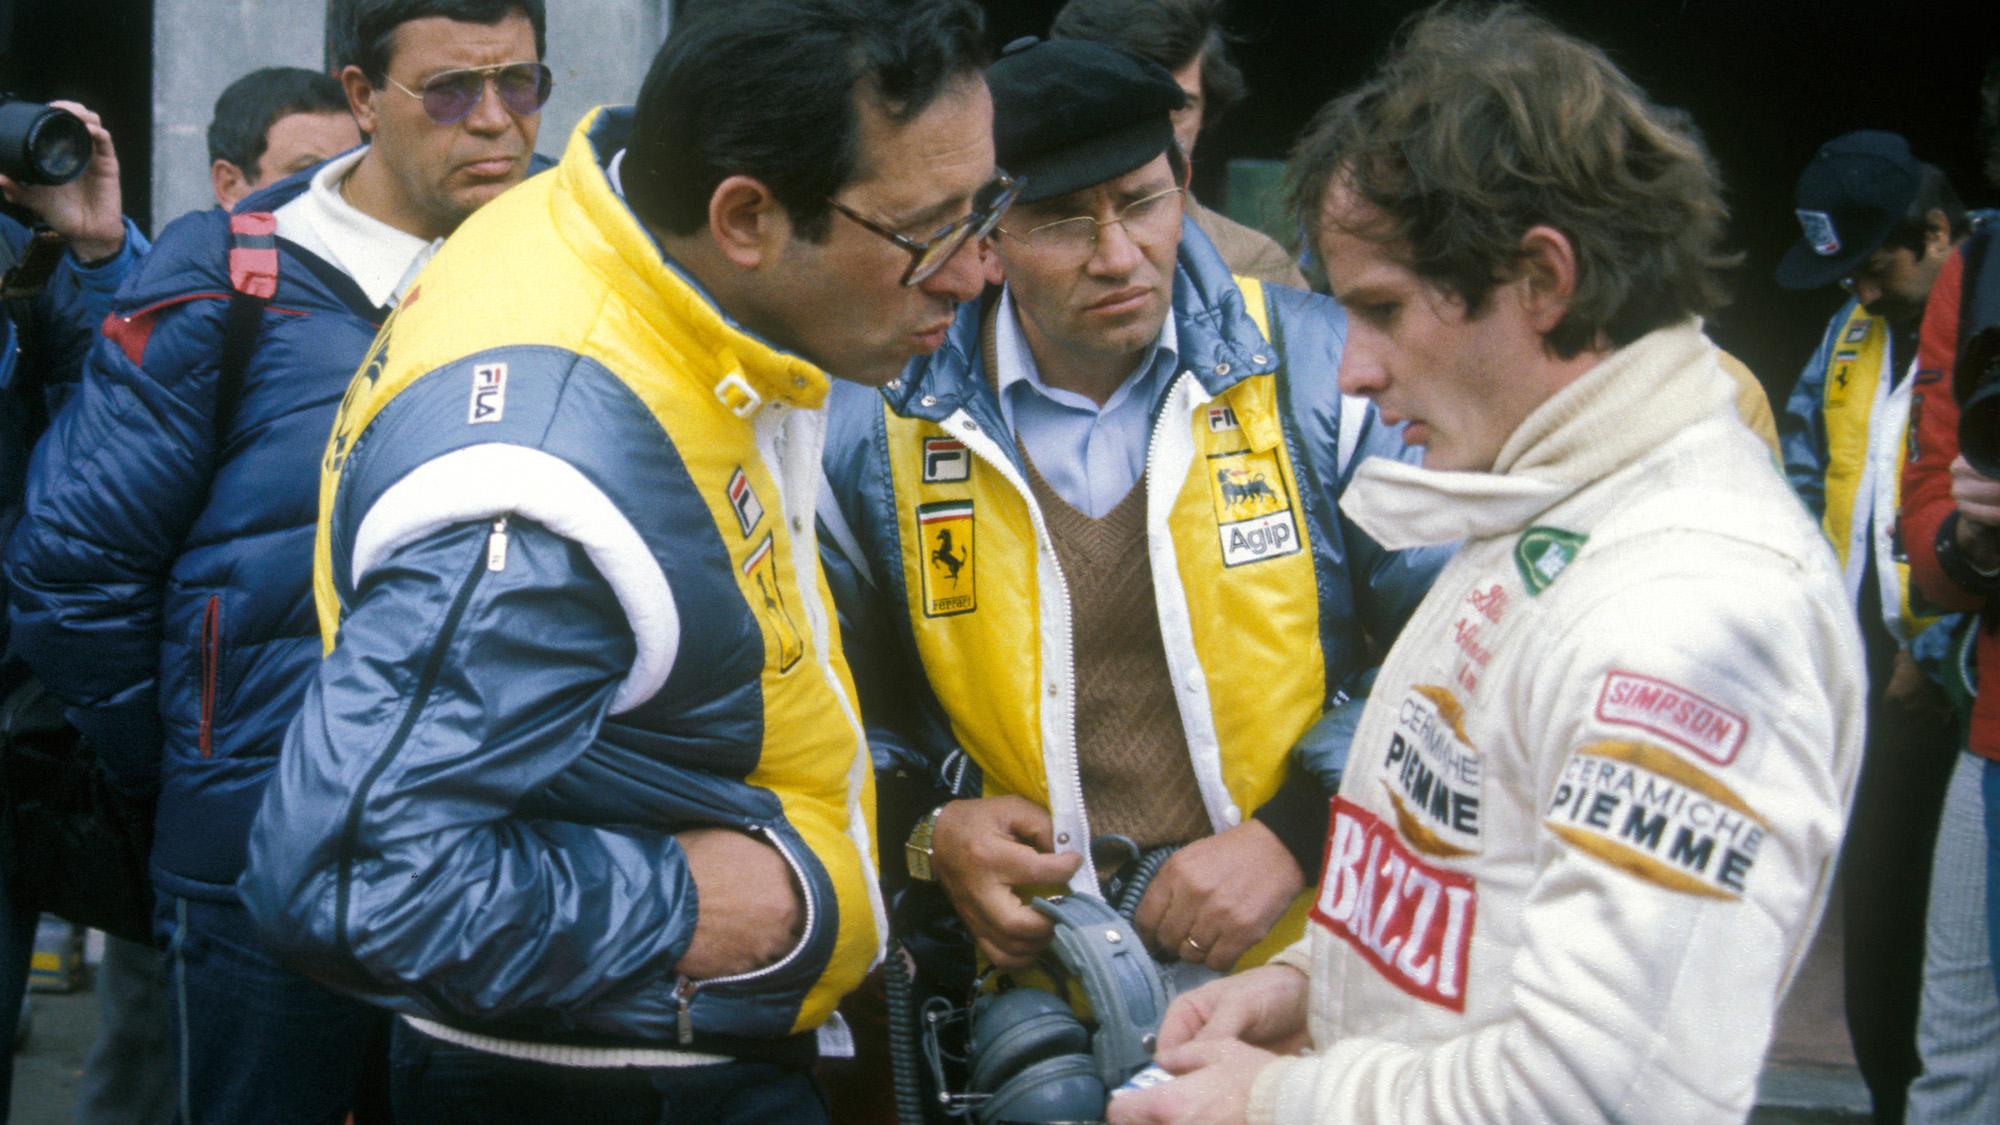 Mauro Forghieri speaks to Gilles Villeneuve ahead of practice at Zolder for the 1982 Dutch Grand Prix